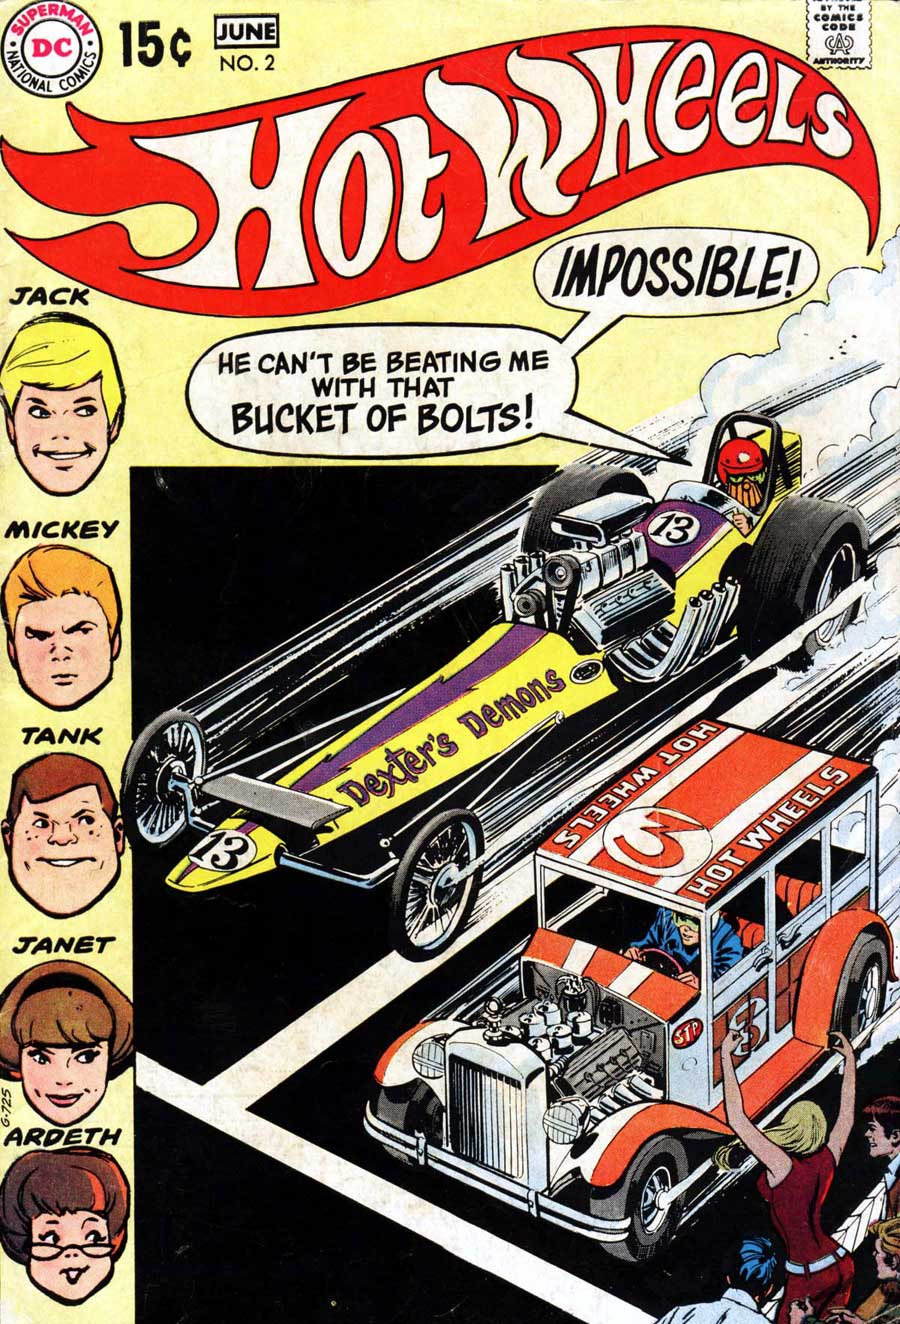 Hot Wheels v1 #2 dc 1970s bronze age comic book cover art by Alex Toth